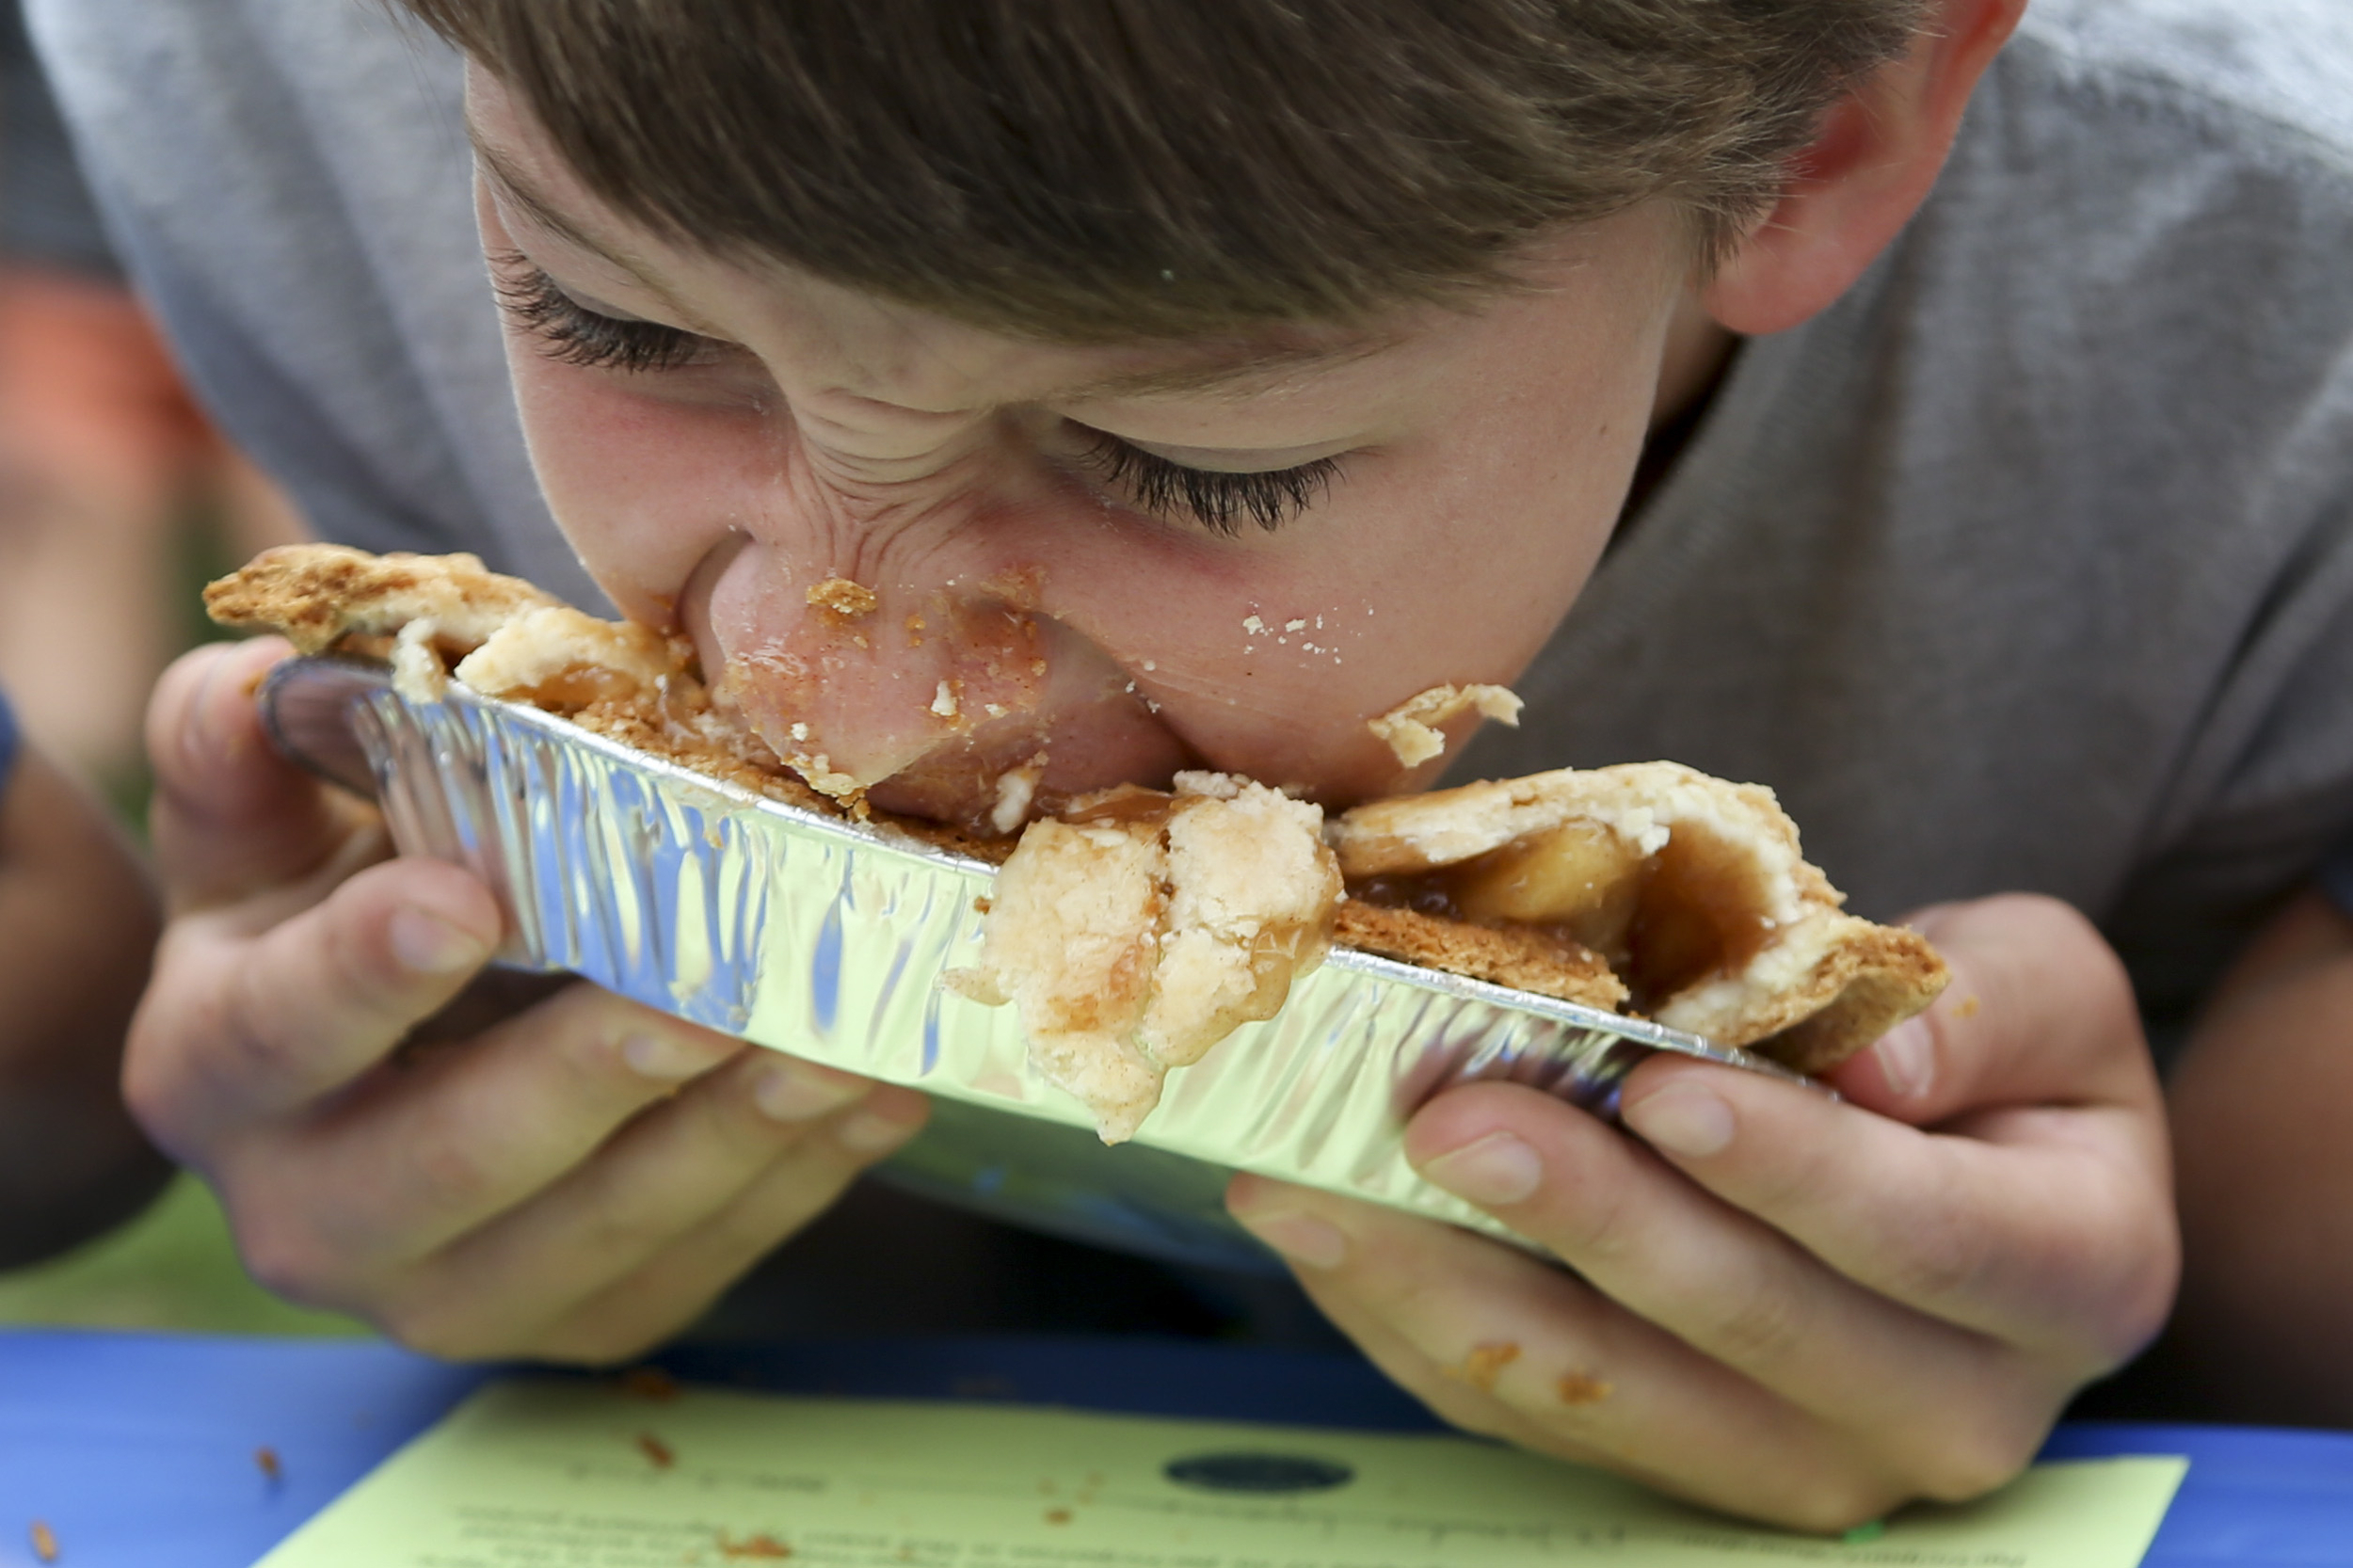 Billy Lyons, 11, of Hanover, N.H., competes in the pie-eating competition on the Dartmouth green in Hanover, N.H., on Saturday, July 4, 2015. Billy's older brother Tom, 12, won this year's ages 12 and under competition.